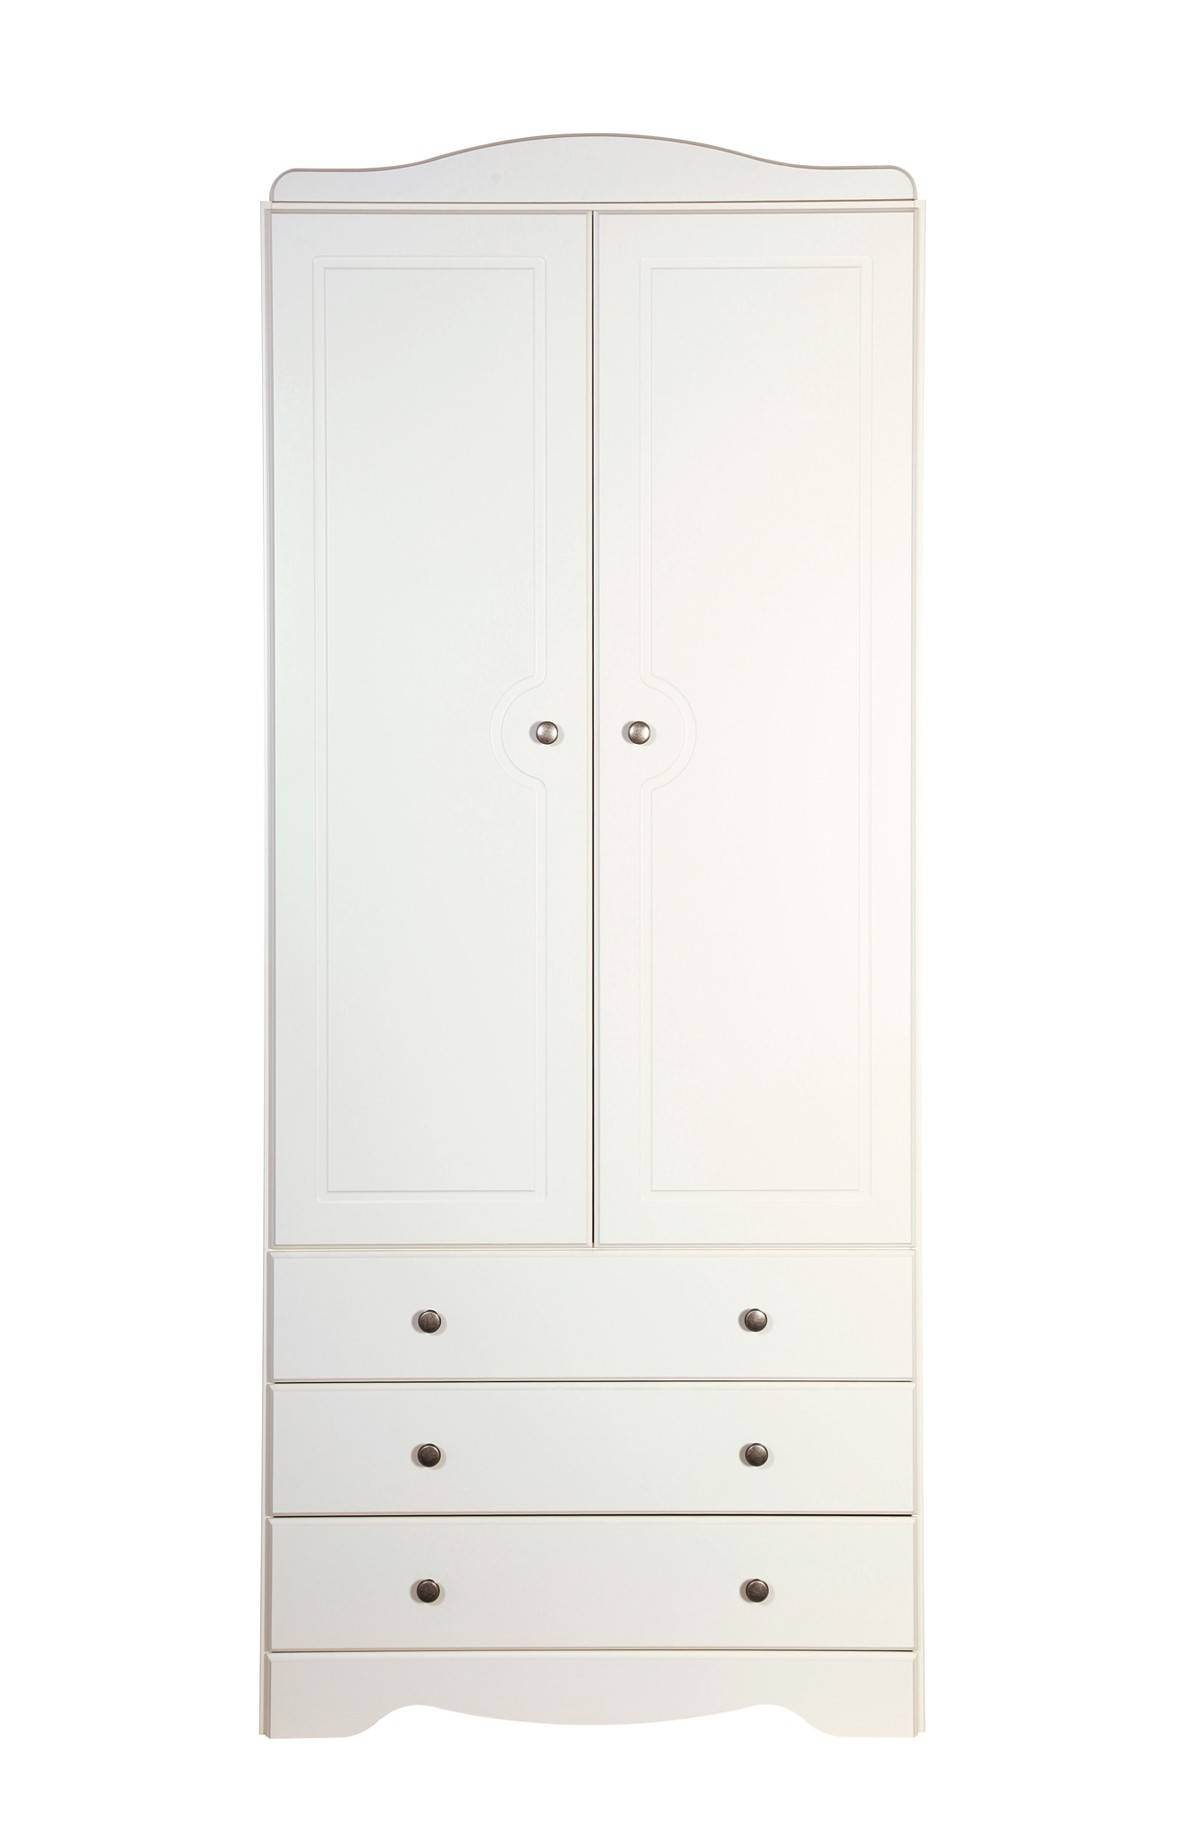 Milford 2 Door 3 Drawer Wardrobe White From The Original Factory Shop Within 3 Door White Wardrobes With Drawers (View 6 of 15)